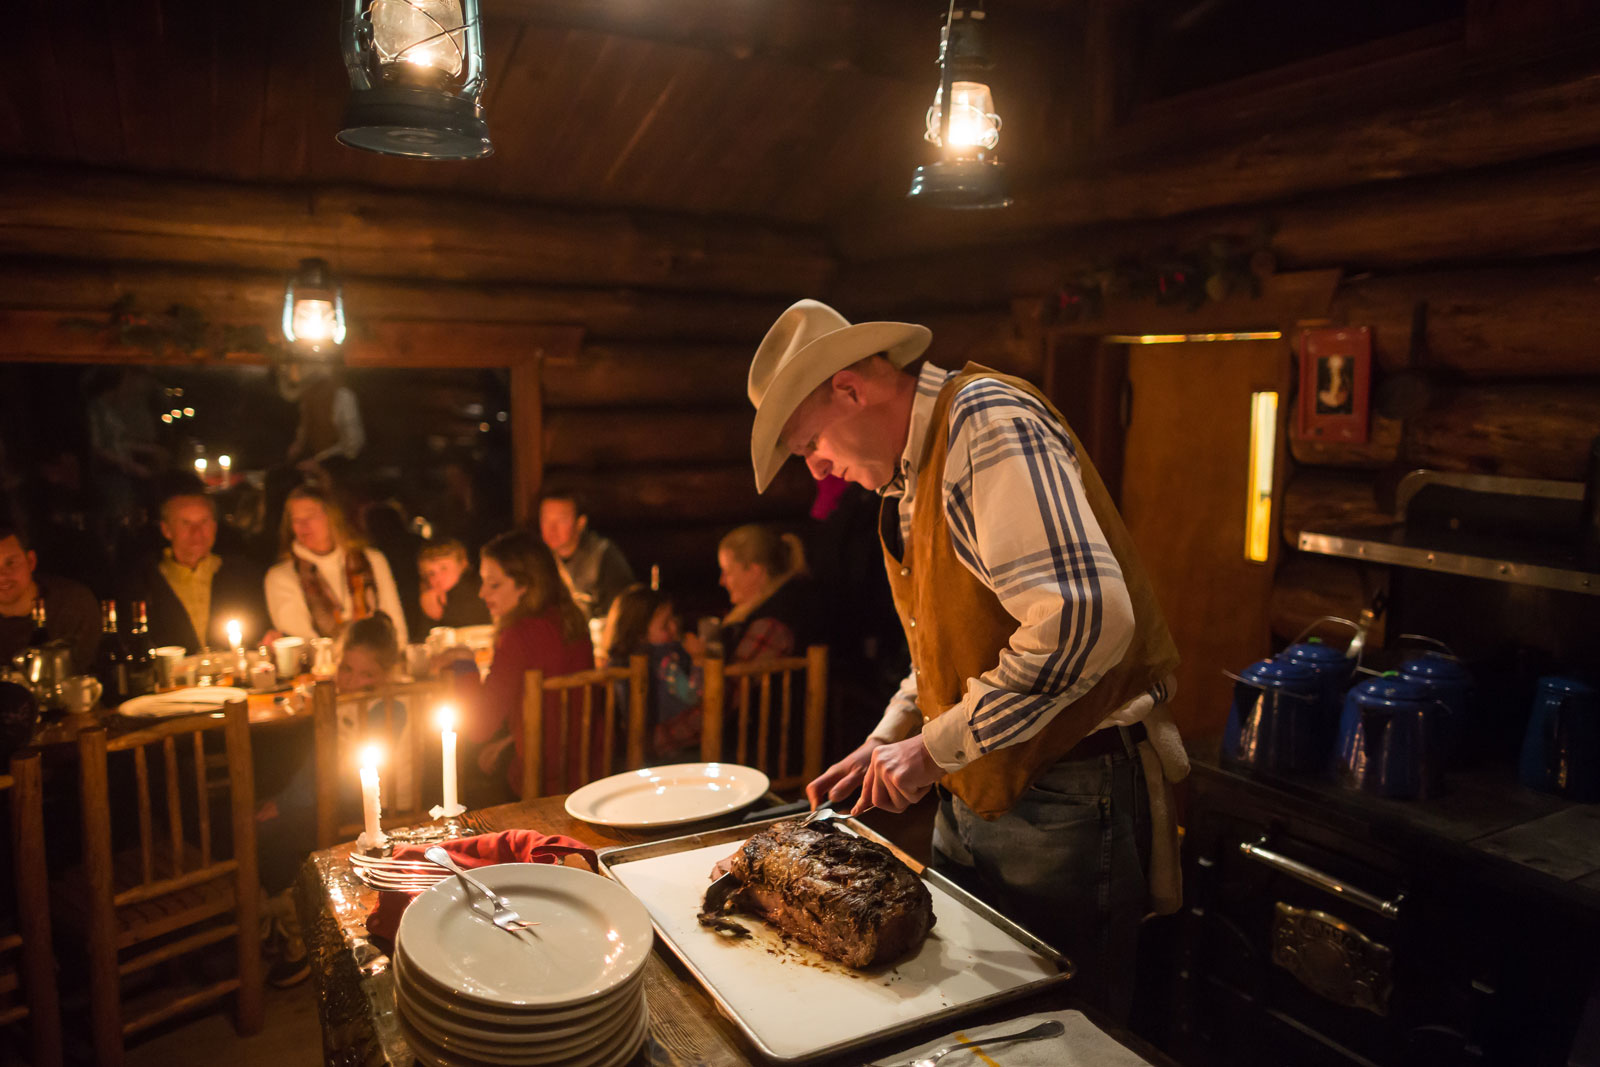 Dinner in the mountain-top cabin at Lone Mountain Ranch after the sleigh ride.